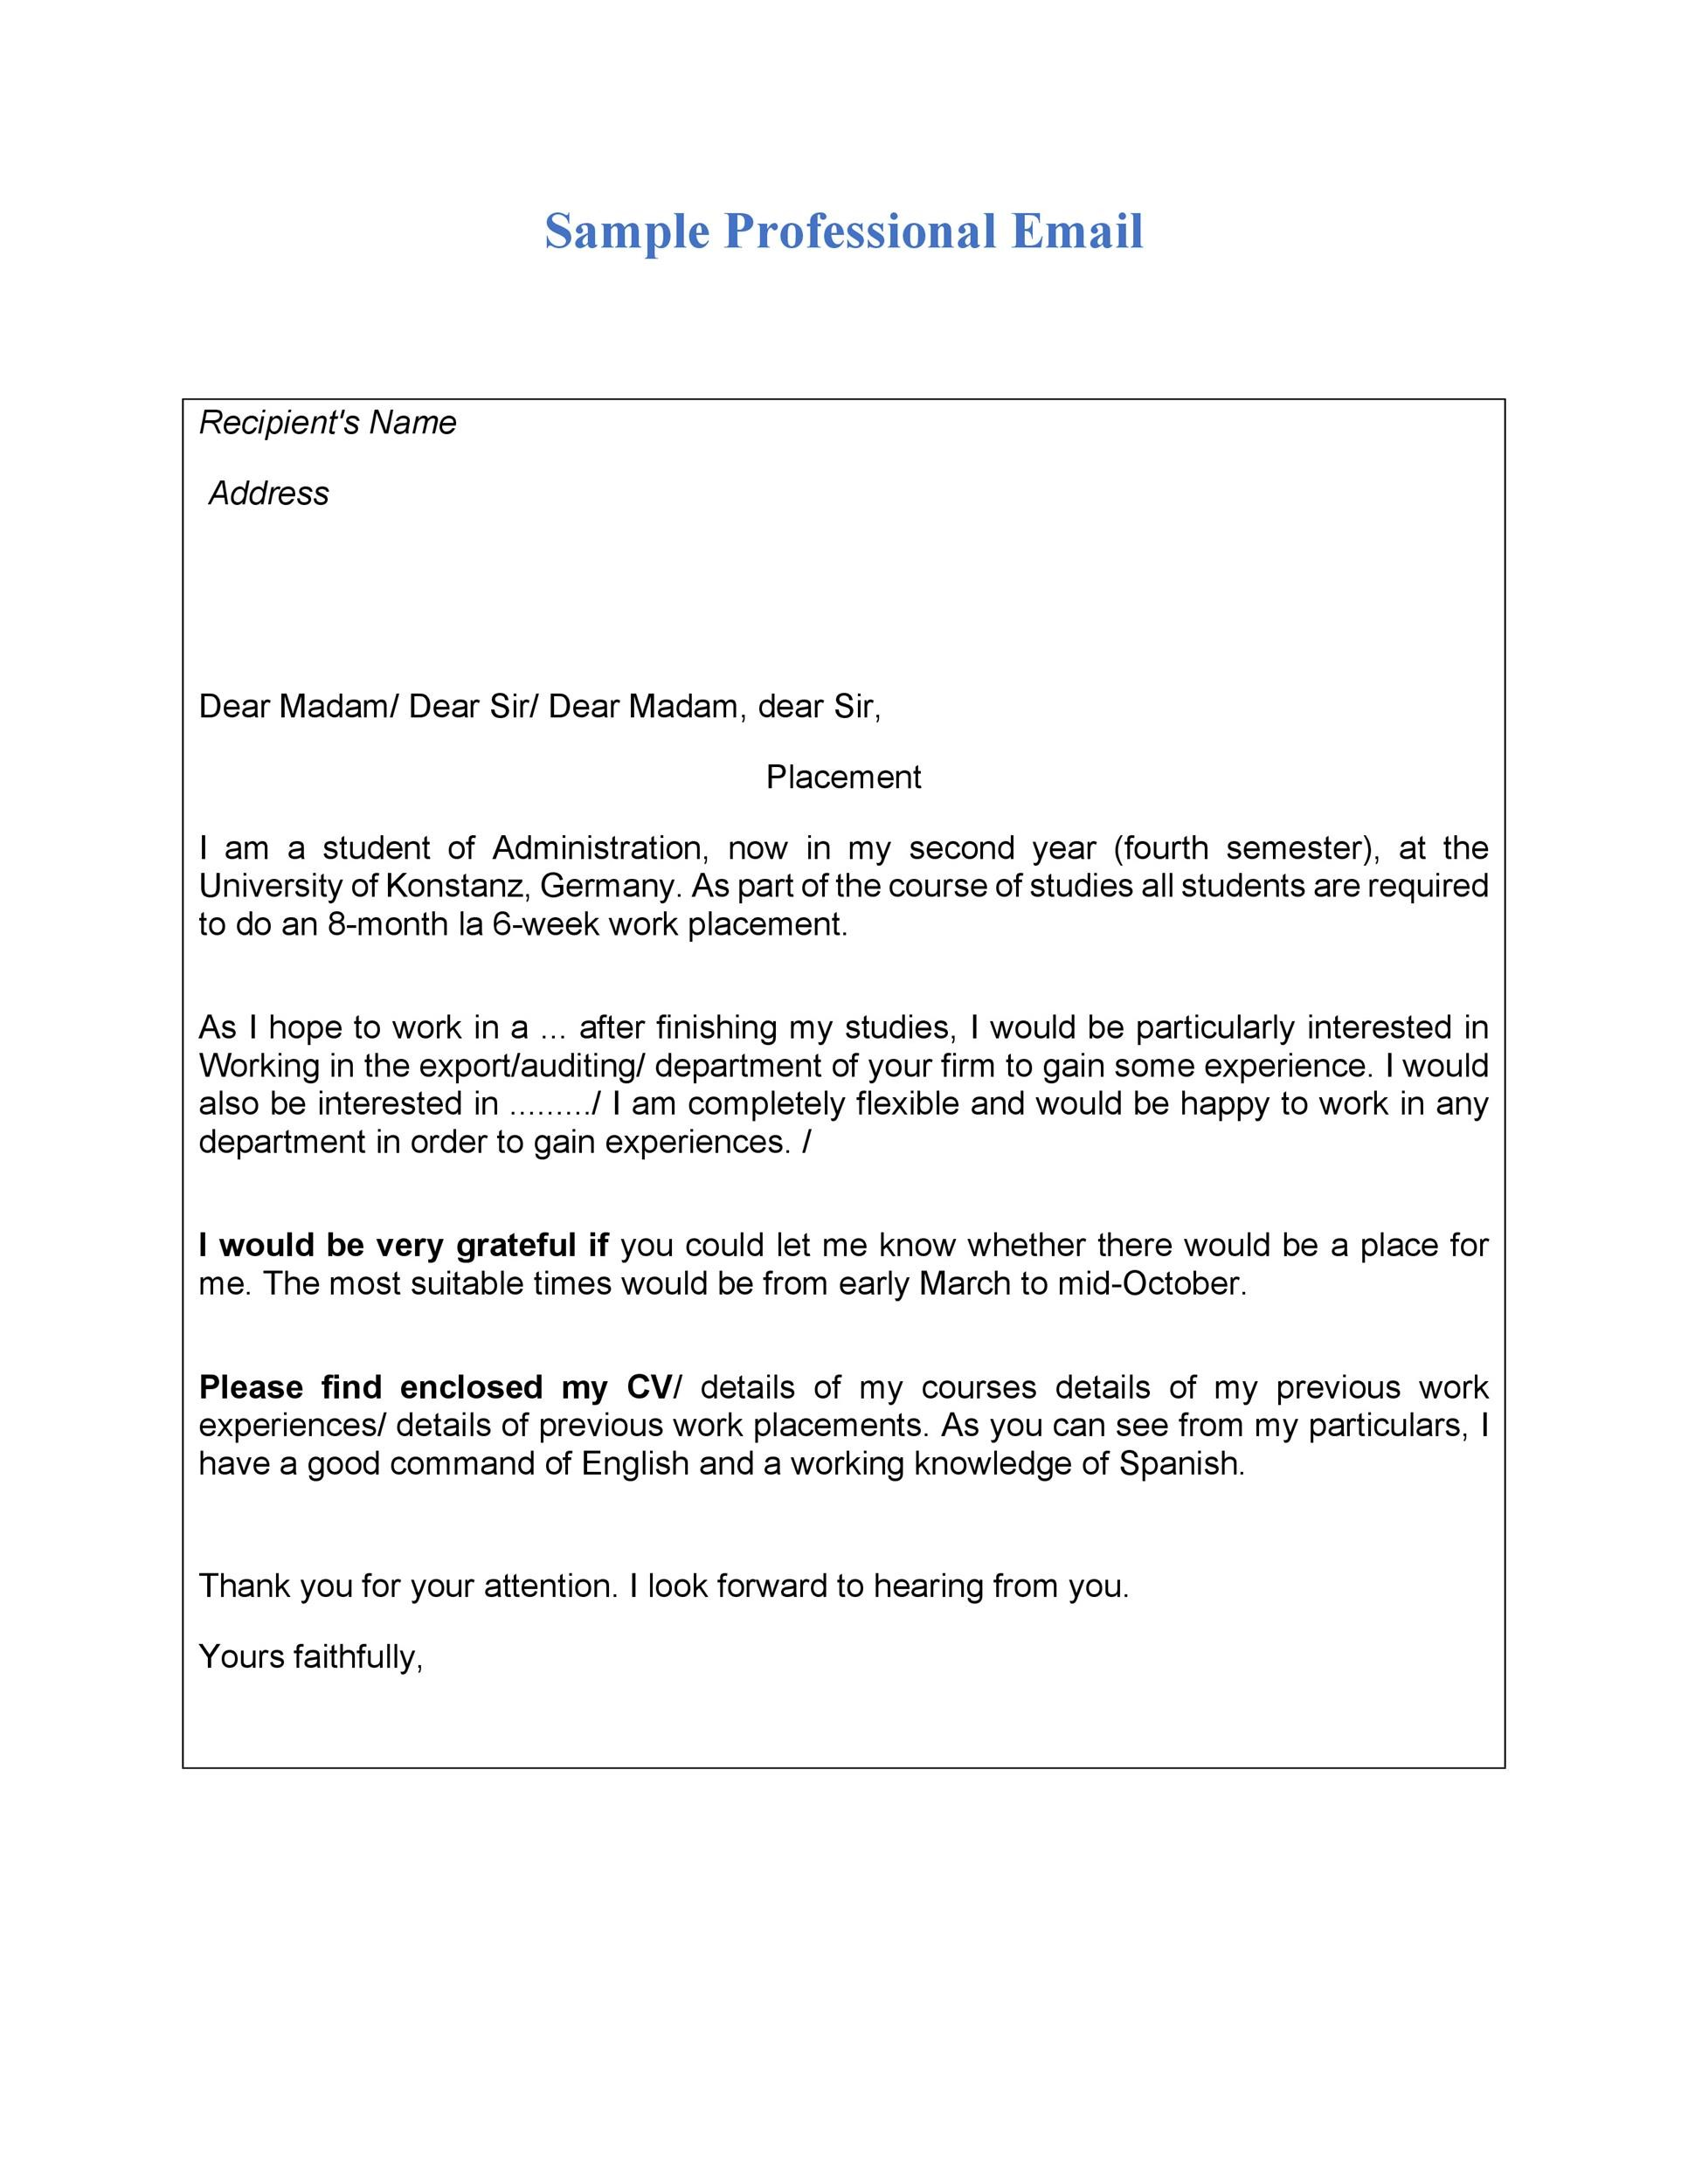 Free professional email example 07